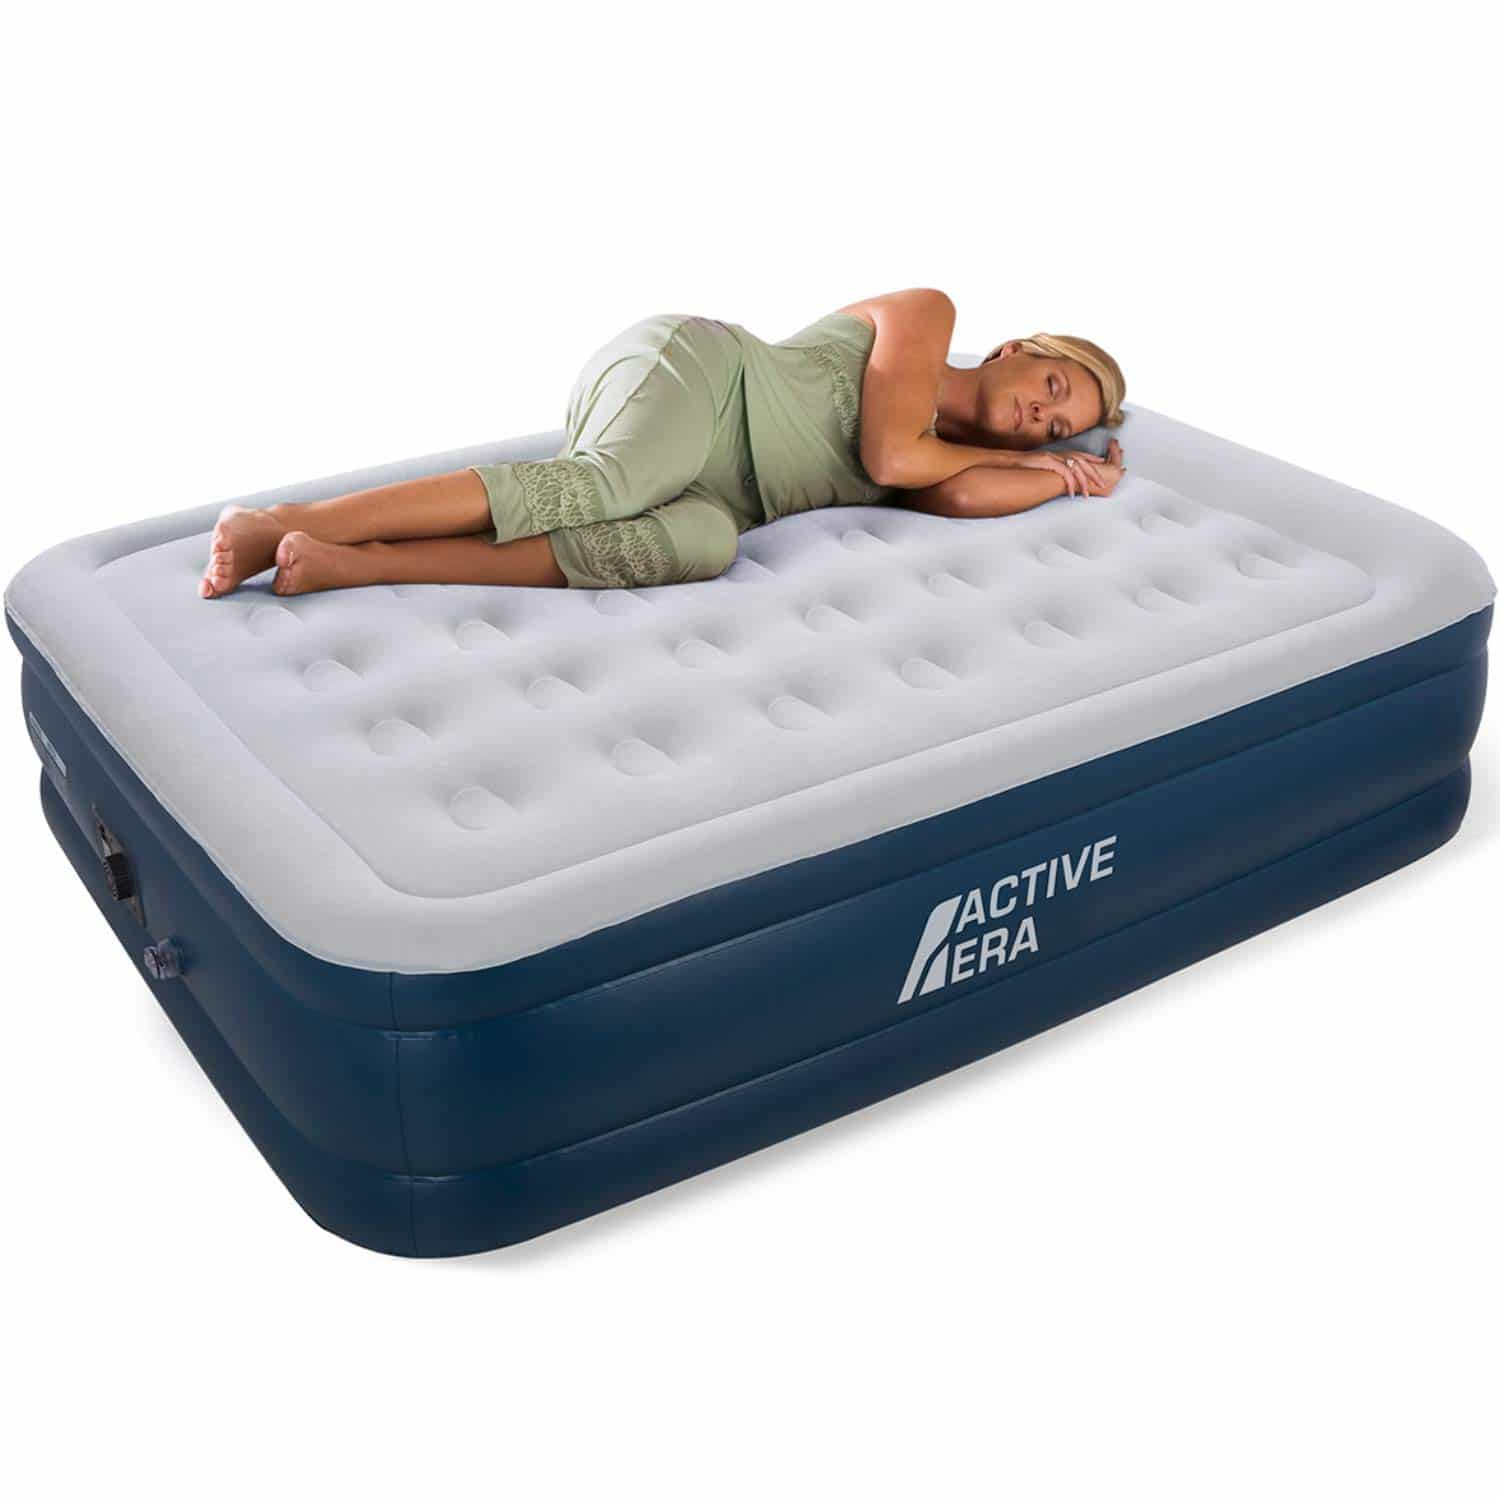 Active Era Premium Mattress